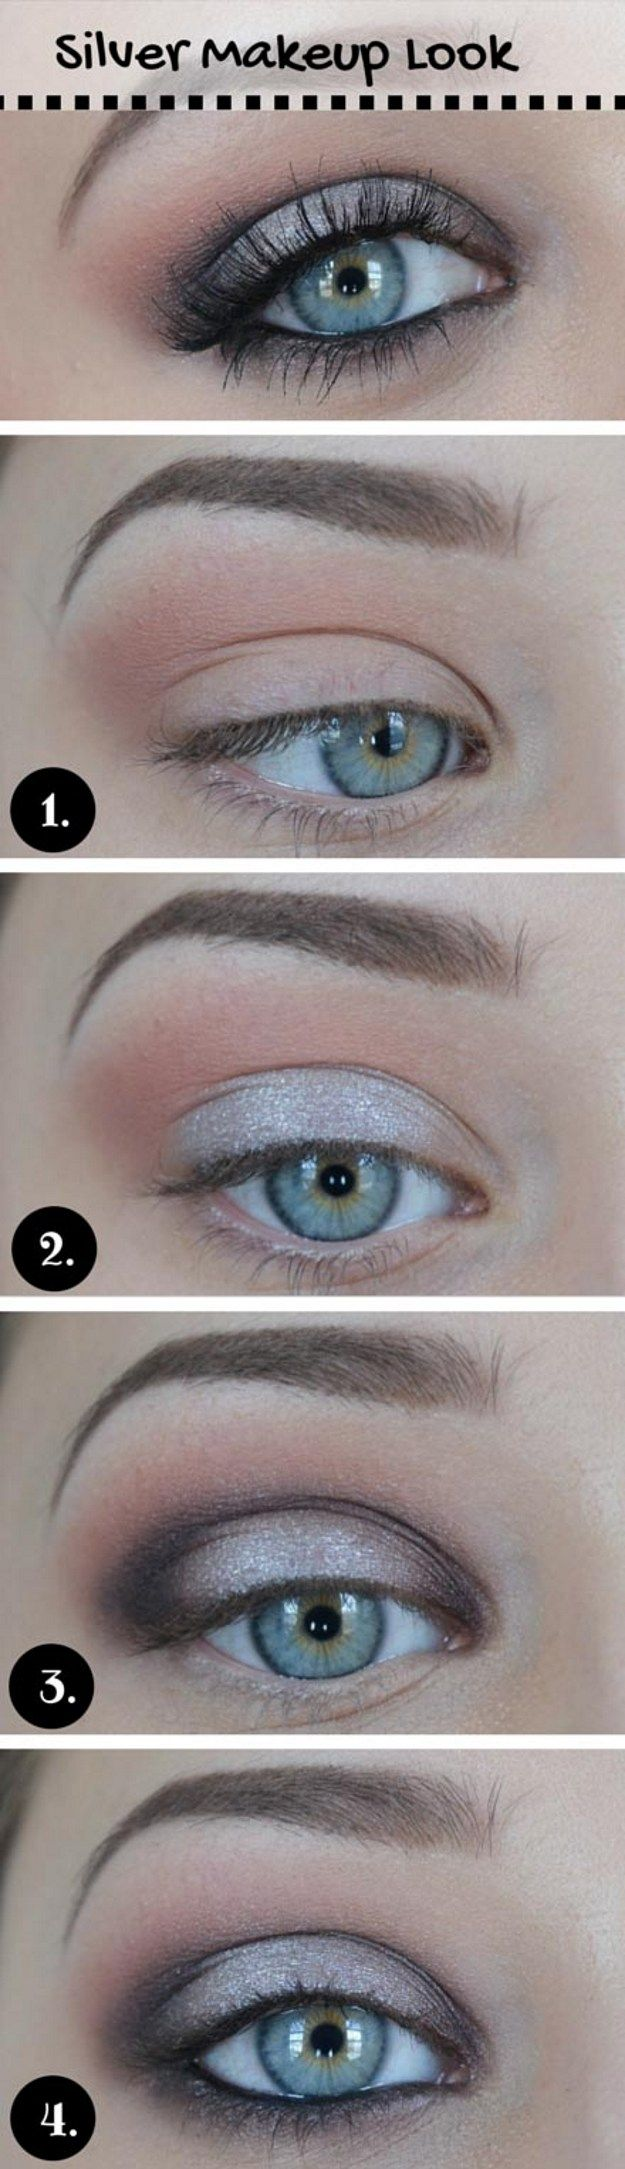 how to draw on natural looking eyebrows